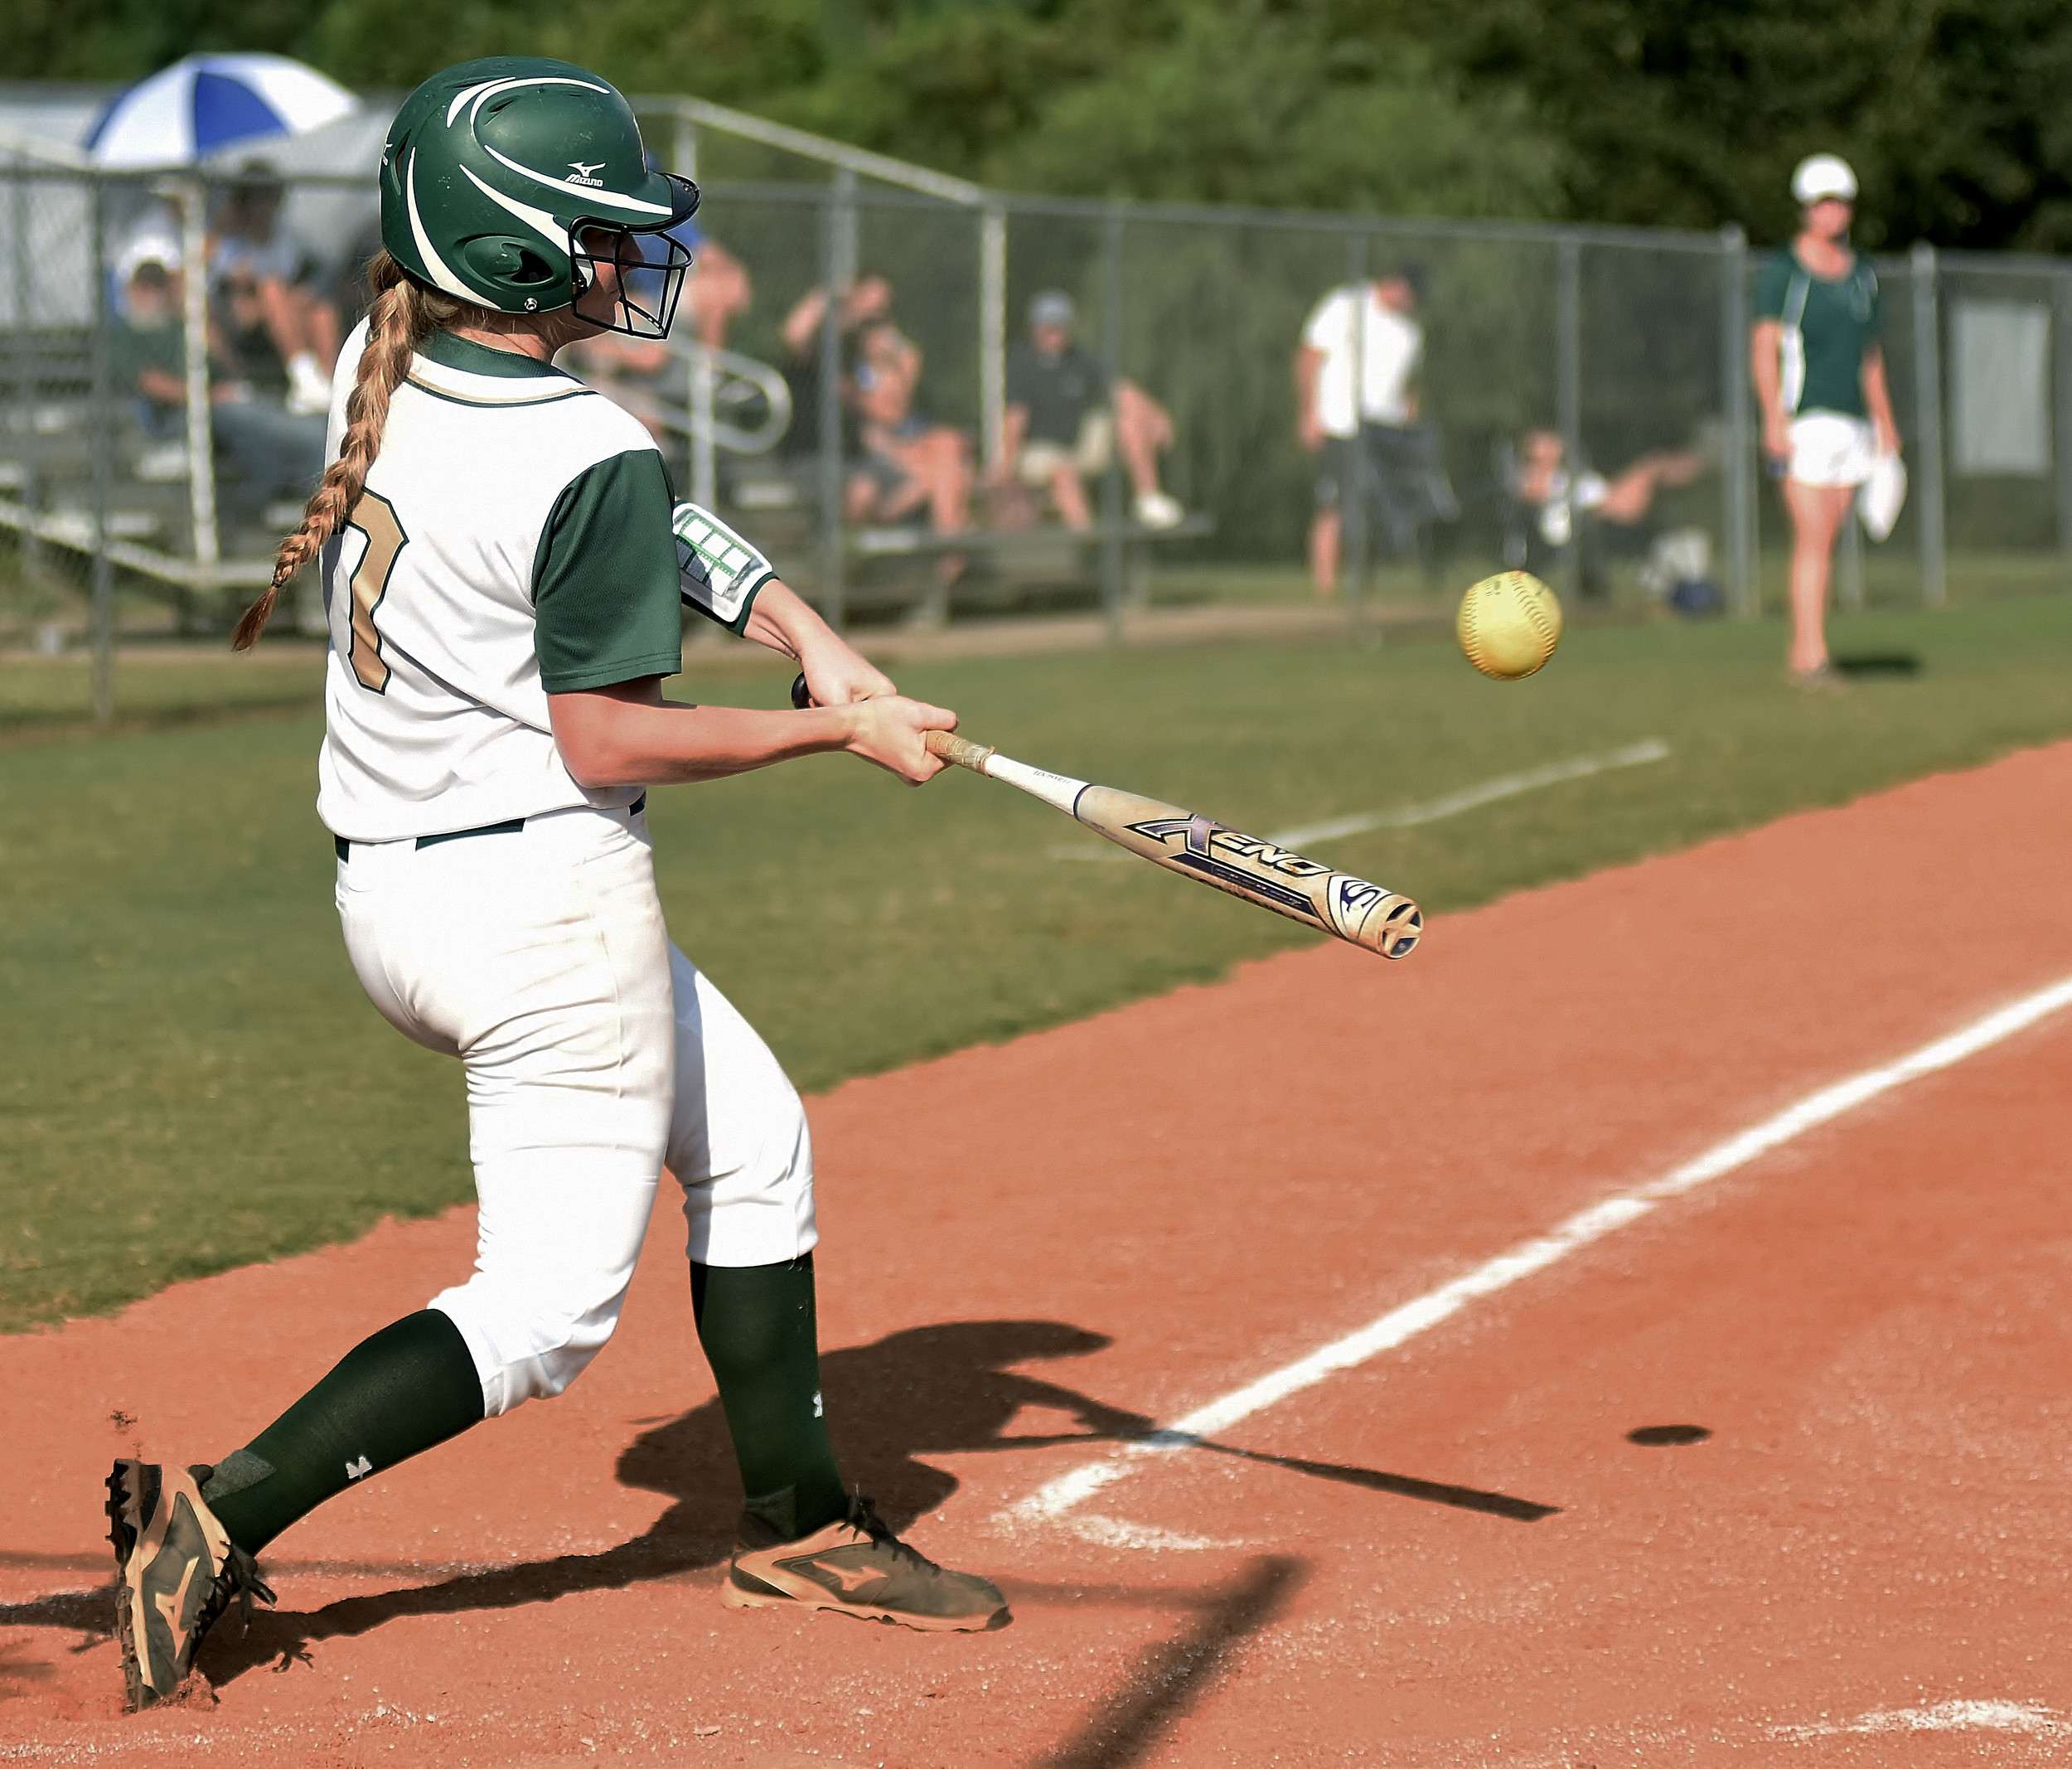 Adairsville left fielder Sierra Tanner connects on an RBI double Monday against Ringgold.